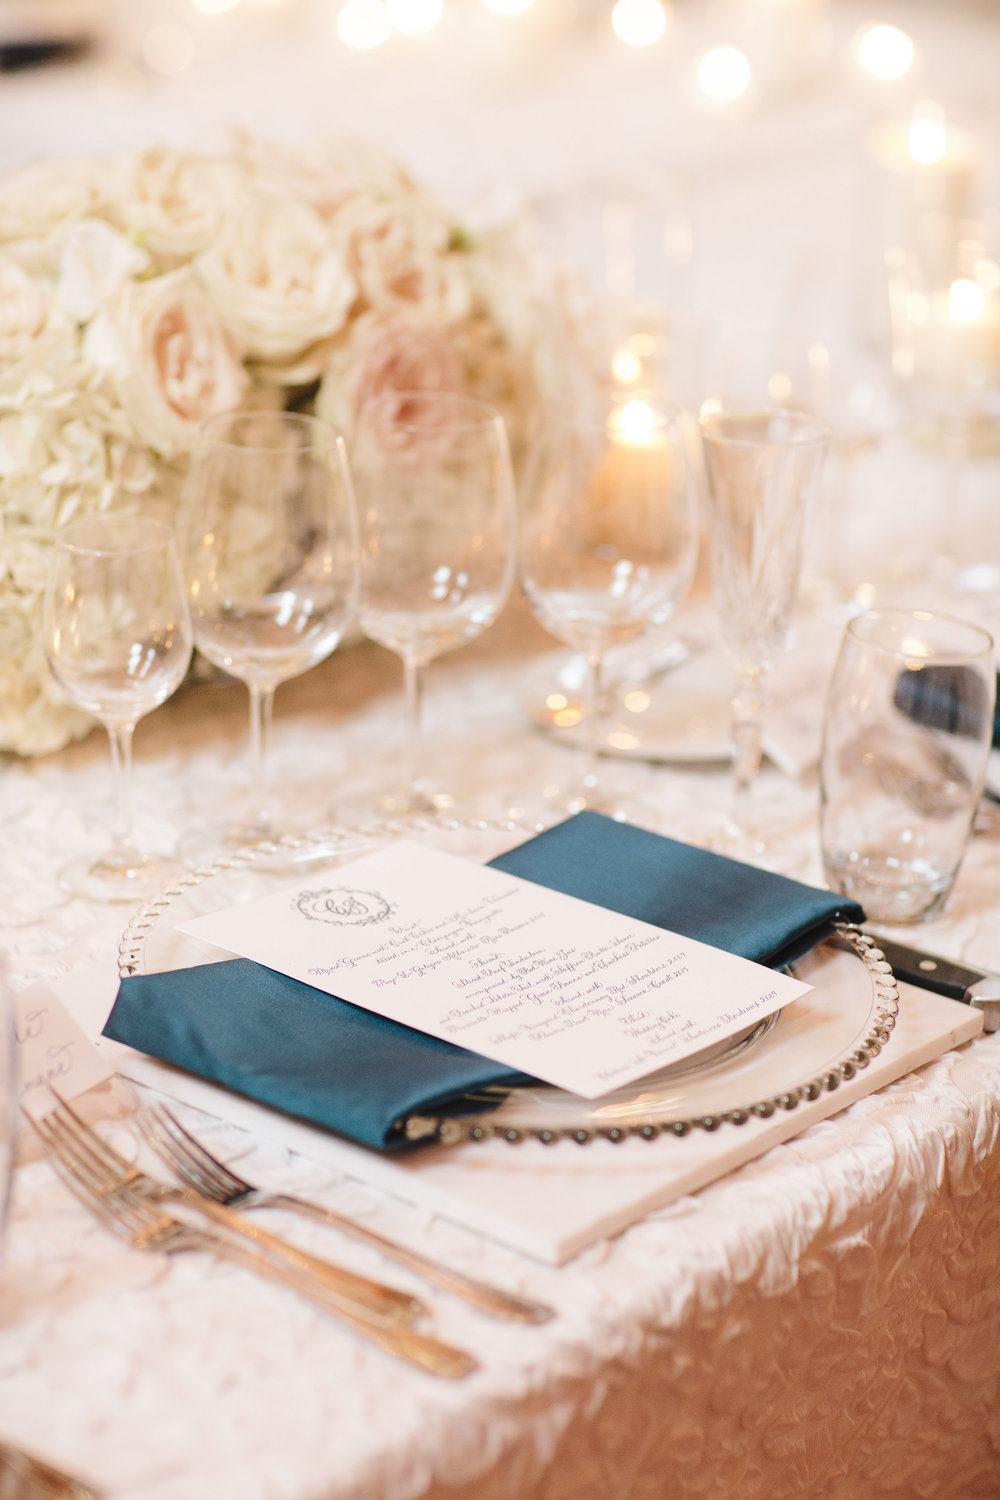 White lace wedding linen with calligraphy menu